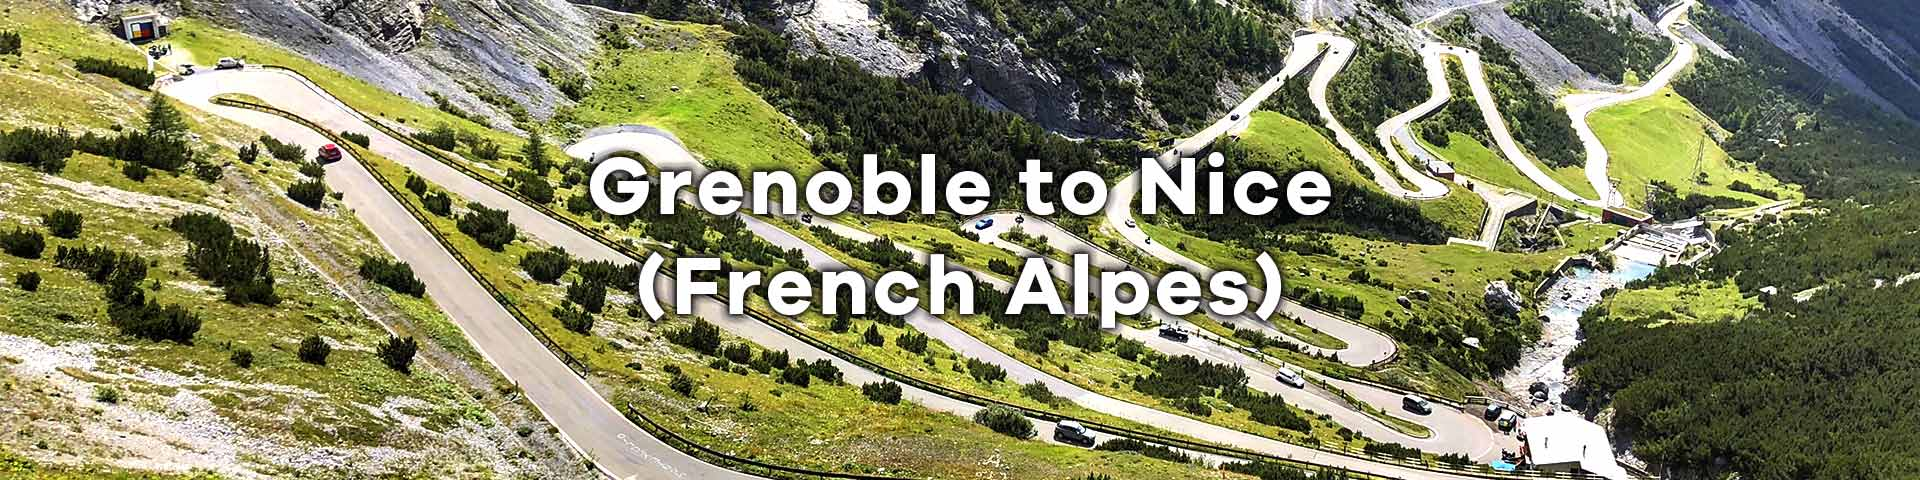 Grenoble to Nice Cycling Tour